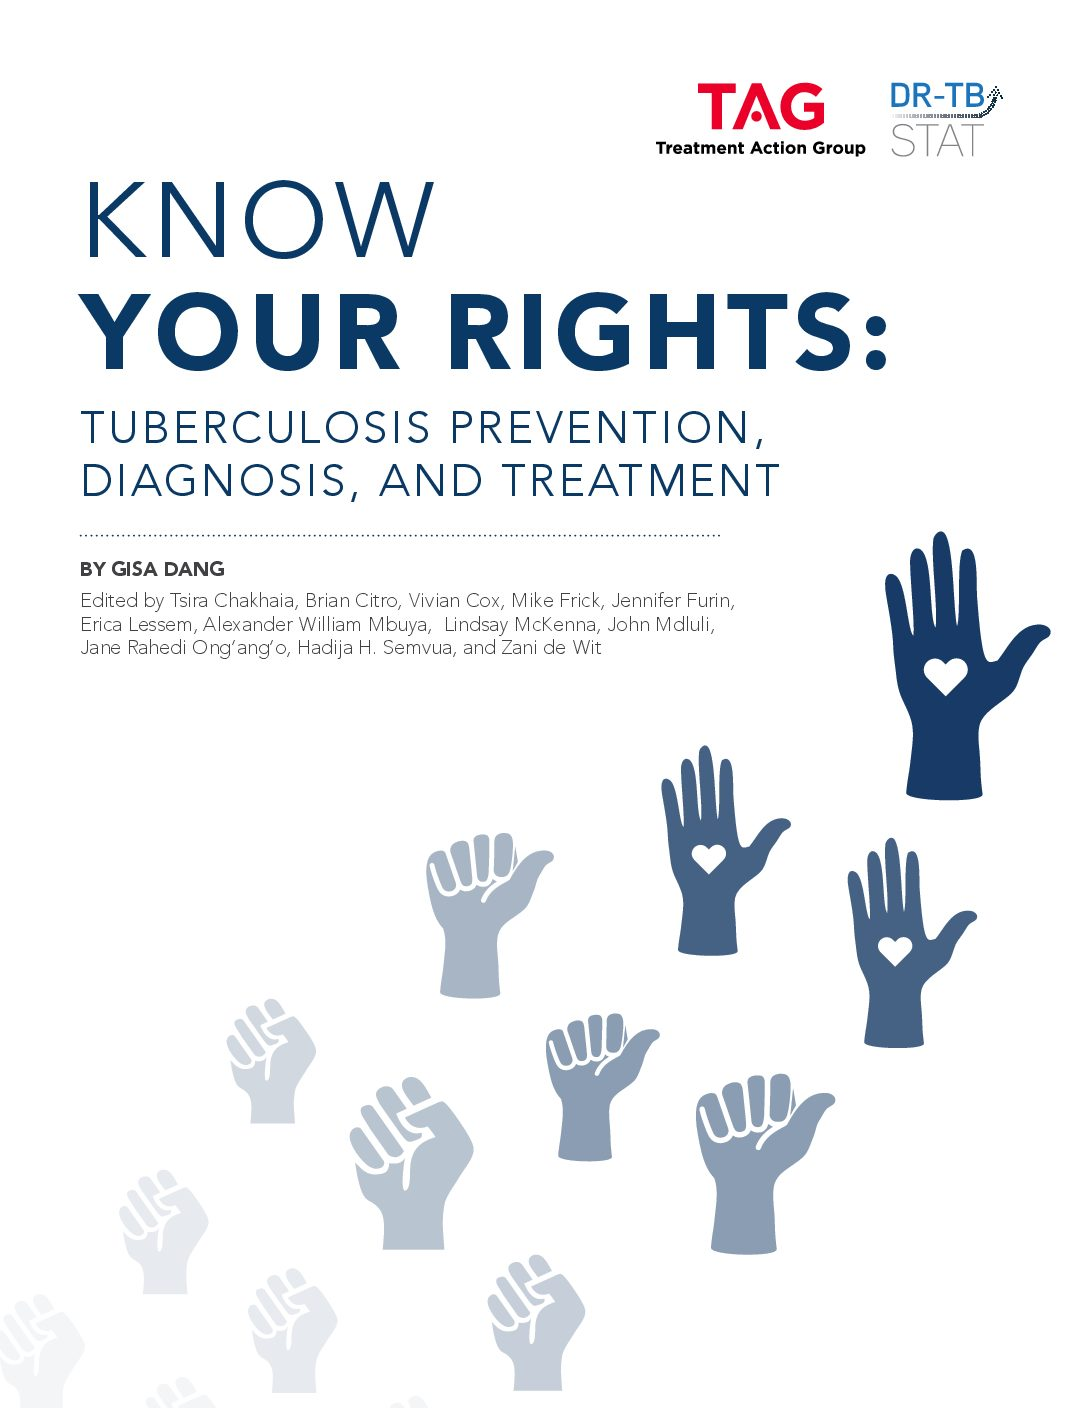 Know Your Rights: Tuberculosis Prevention, Diagnosis, and Treatment Guide